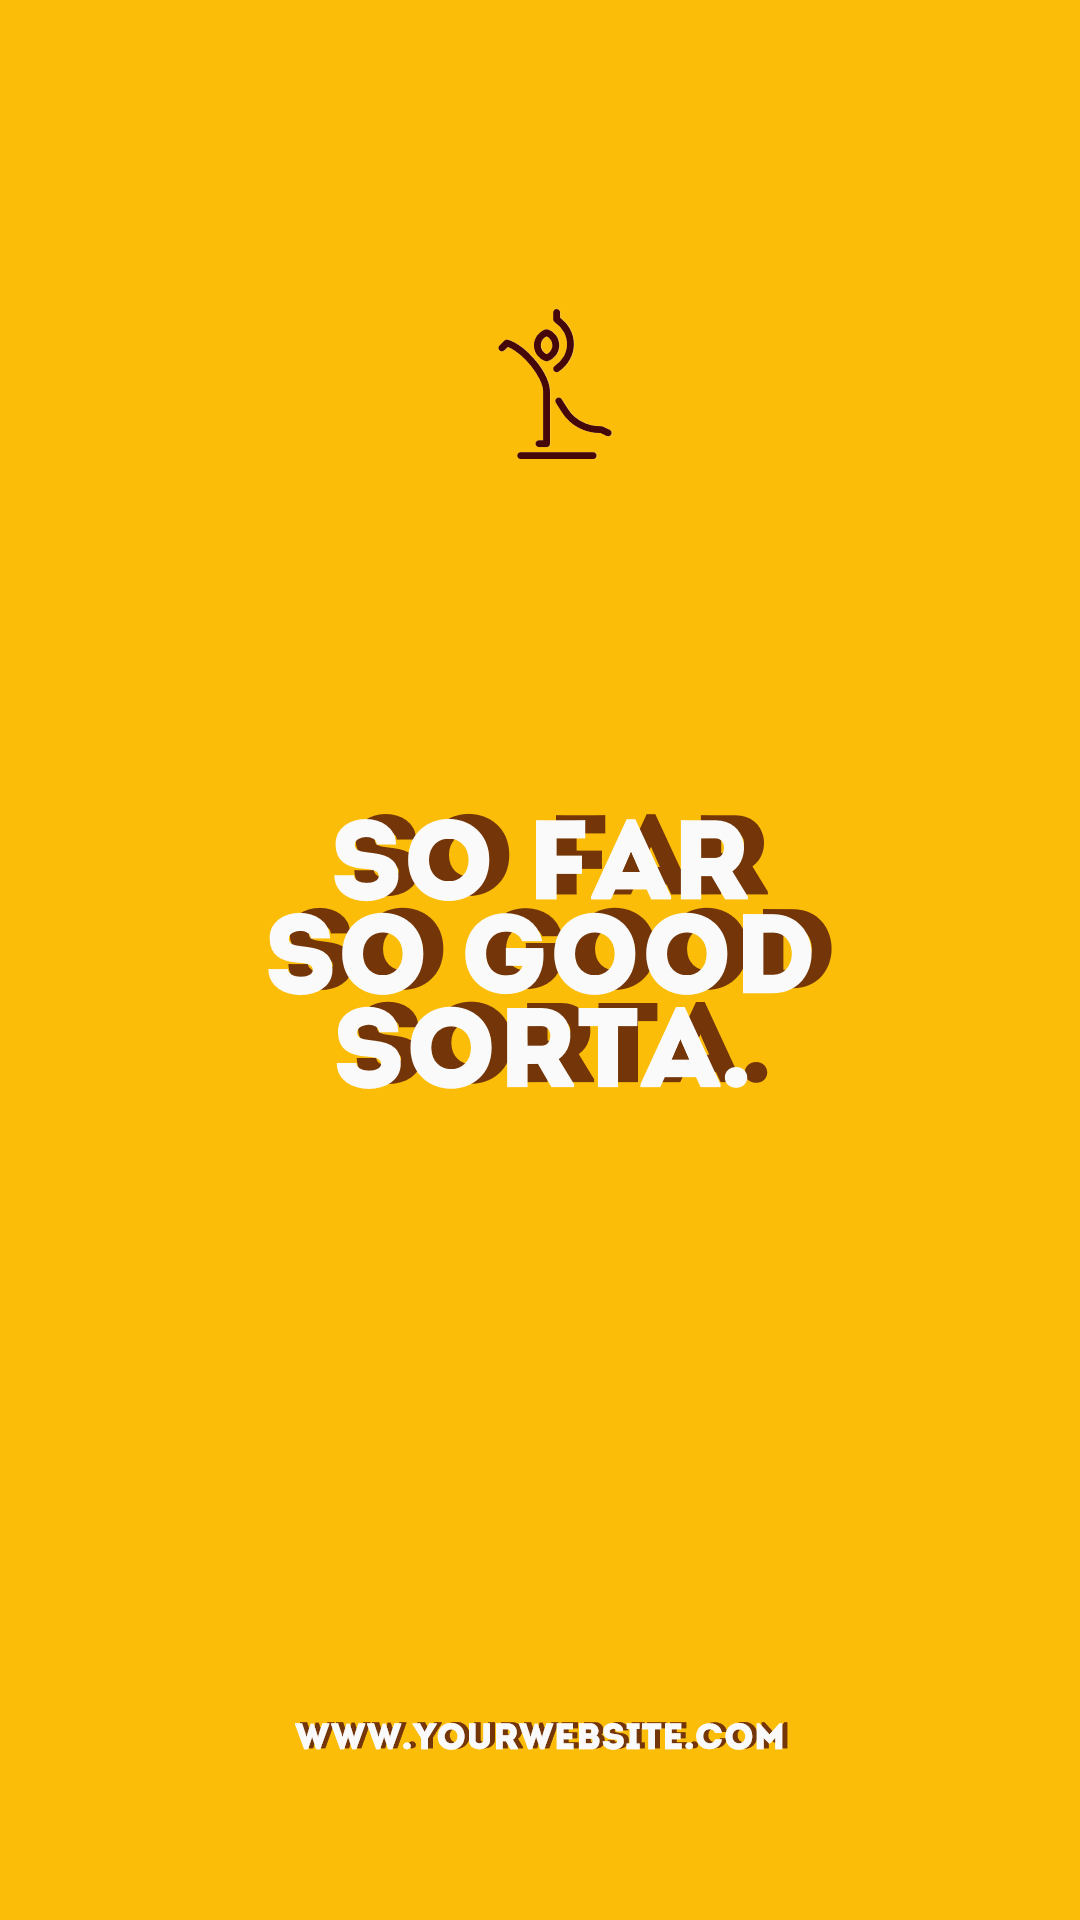 Poster, Simple, Quote, Yellow,  Free Image